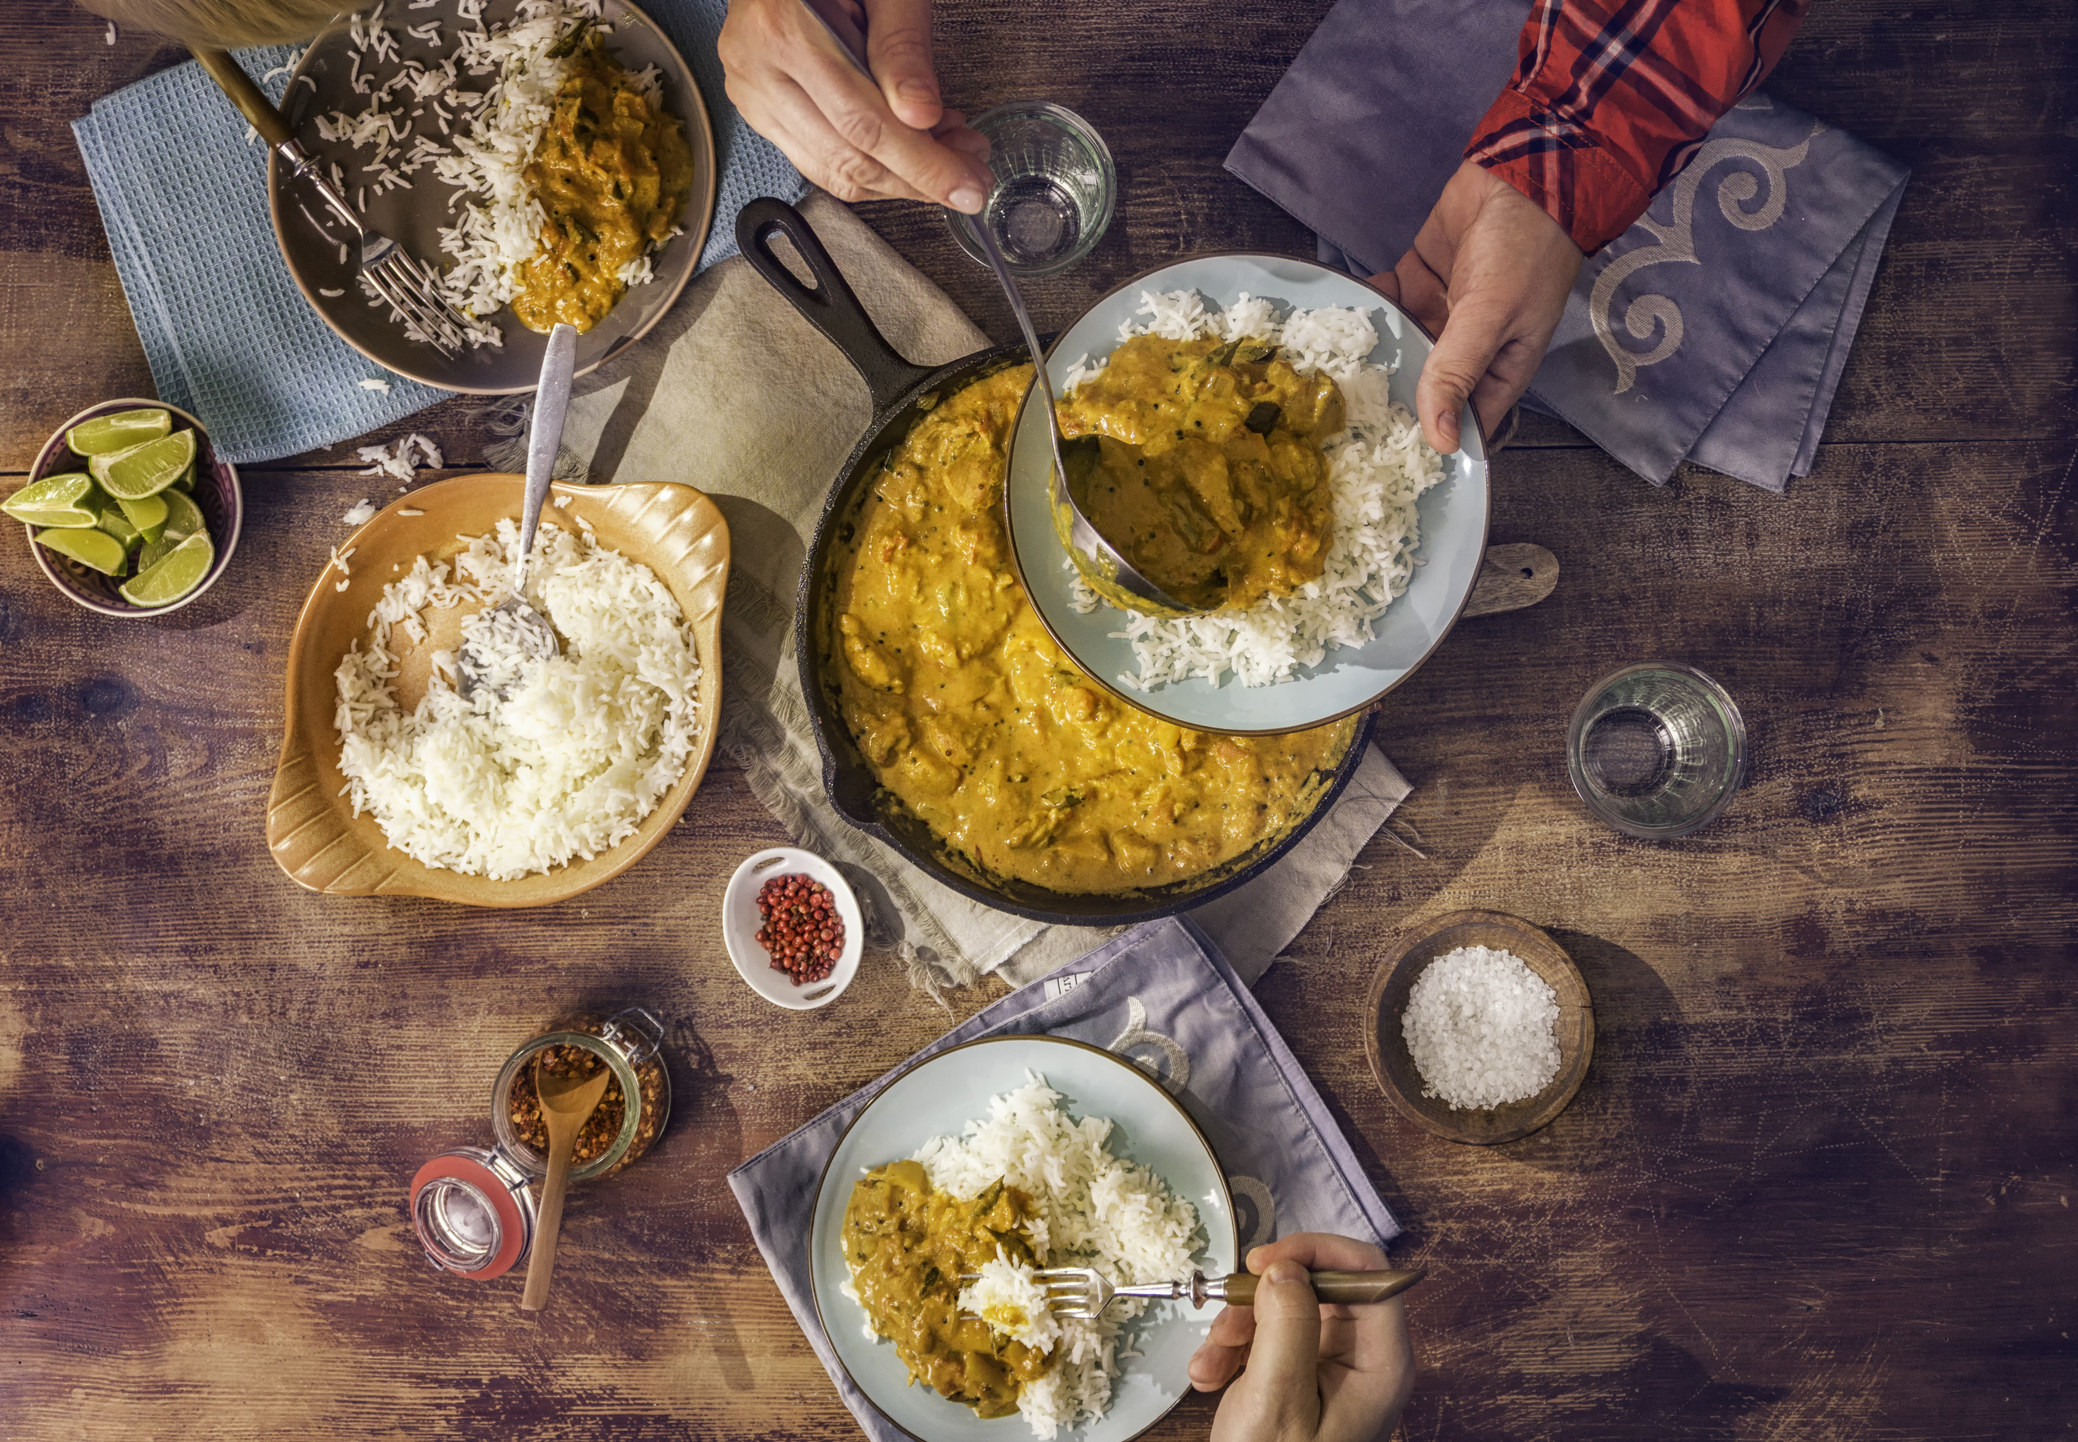 An Indian meal with rice and spiced chicken.